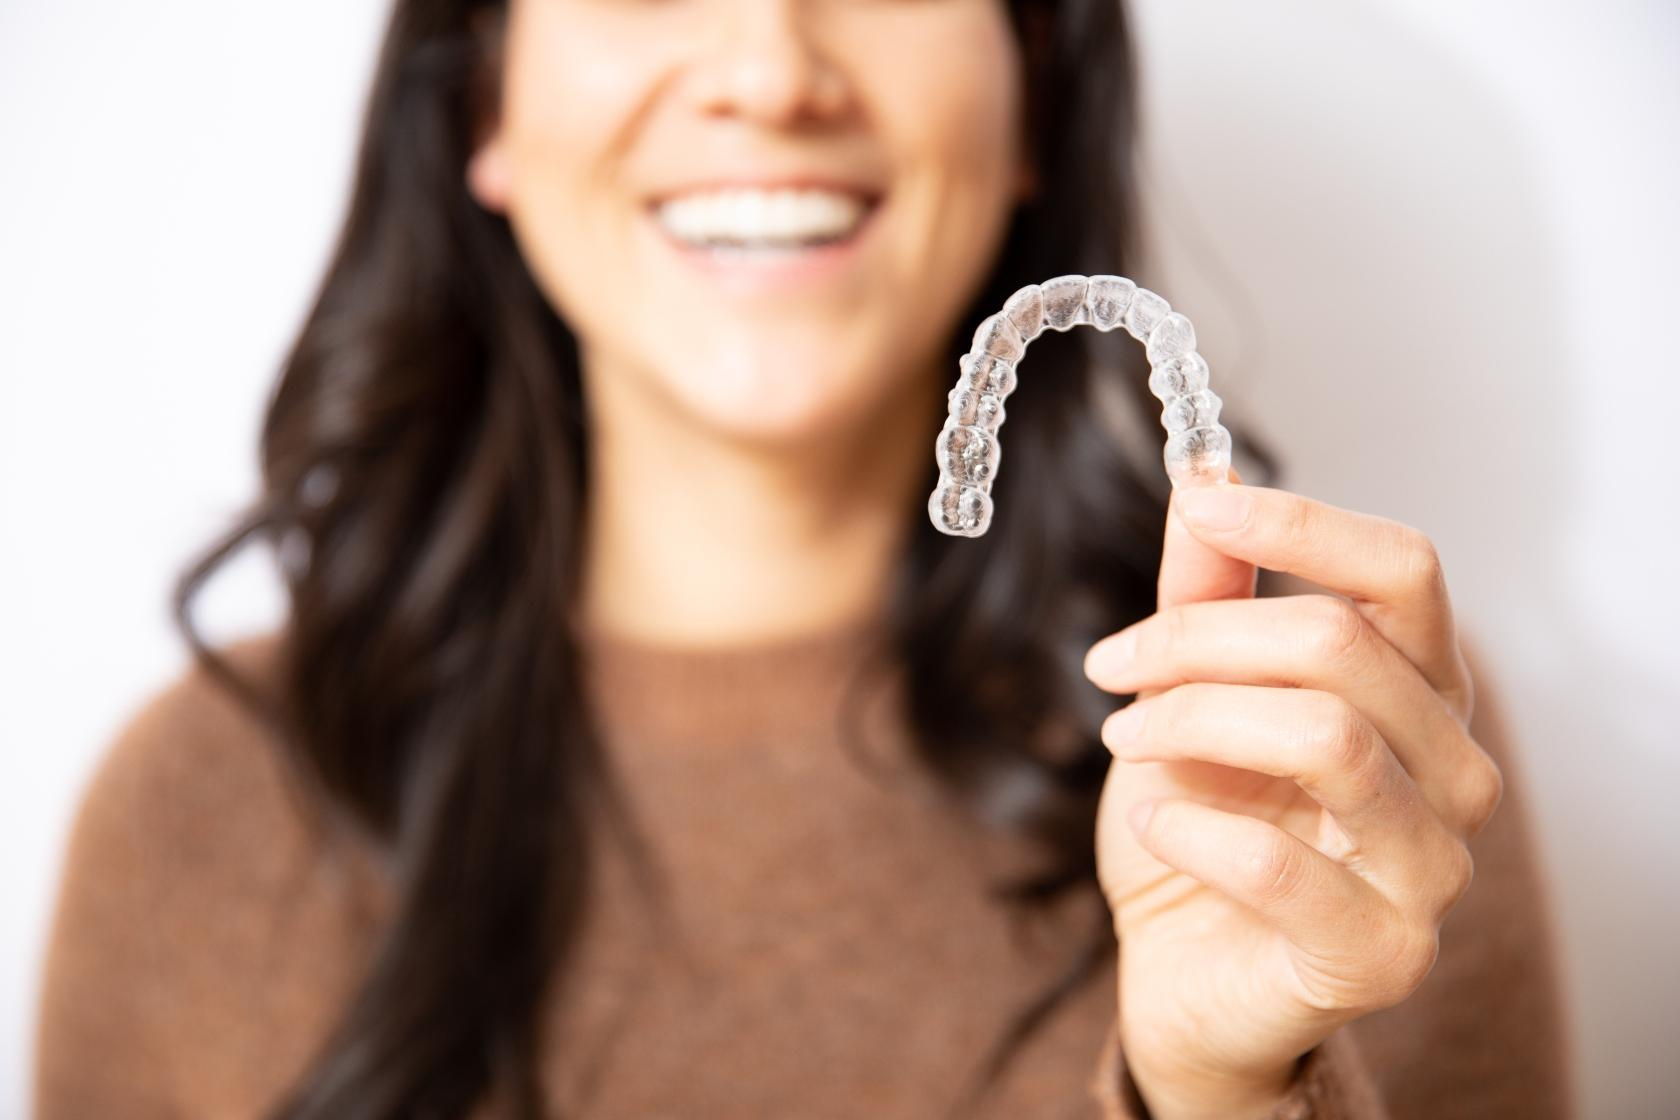 Woman holding up invisalign